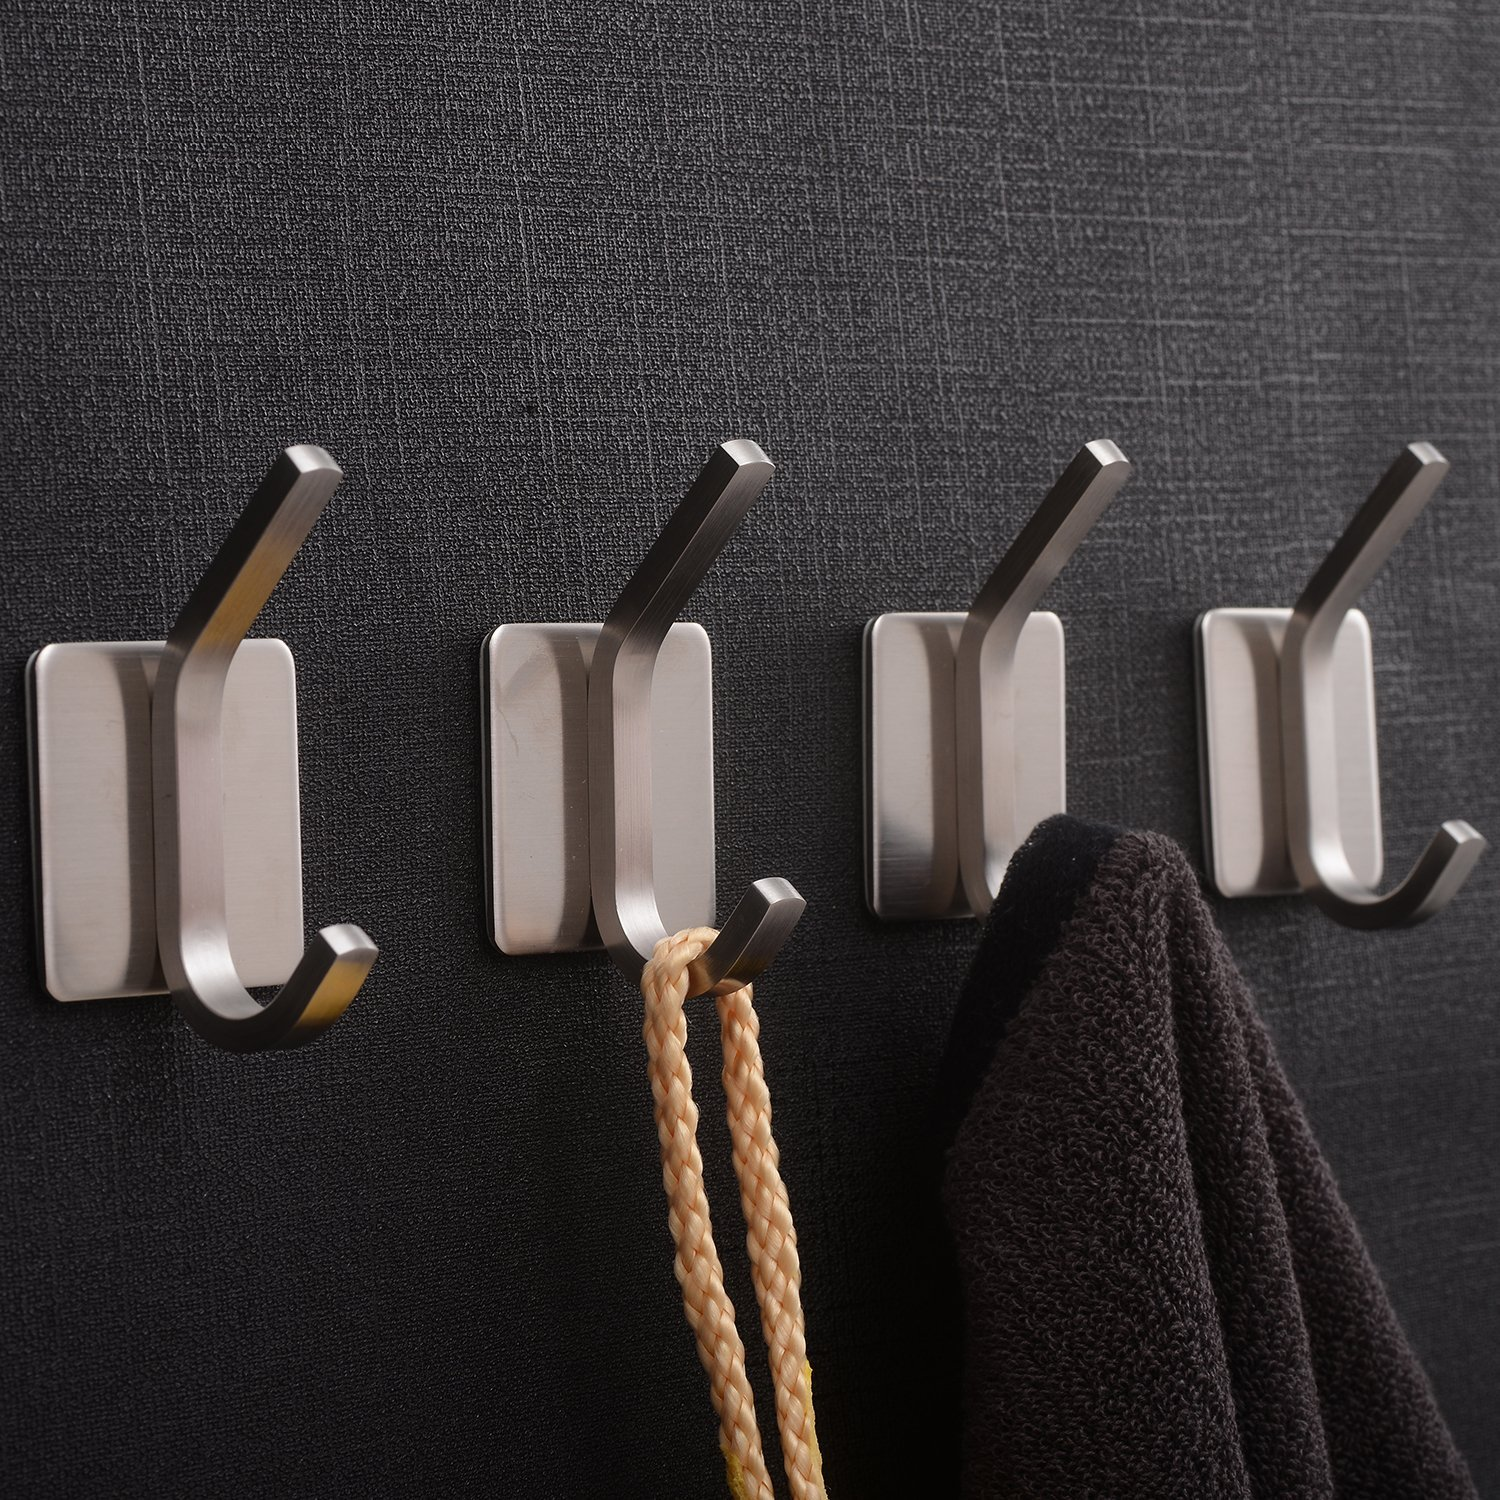 YIGII Coat Robe Hook Rail Bathroom Wall 3M Self Adhesive Brushed SUS304 Stainless Steel Towel Hooks 4 Pack